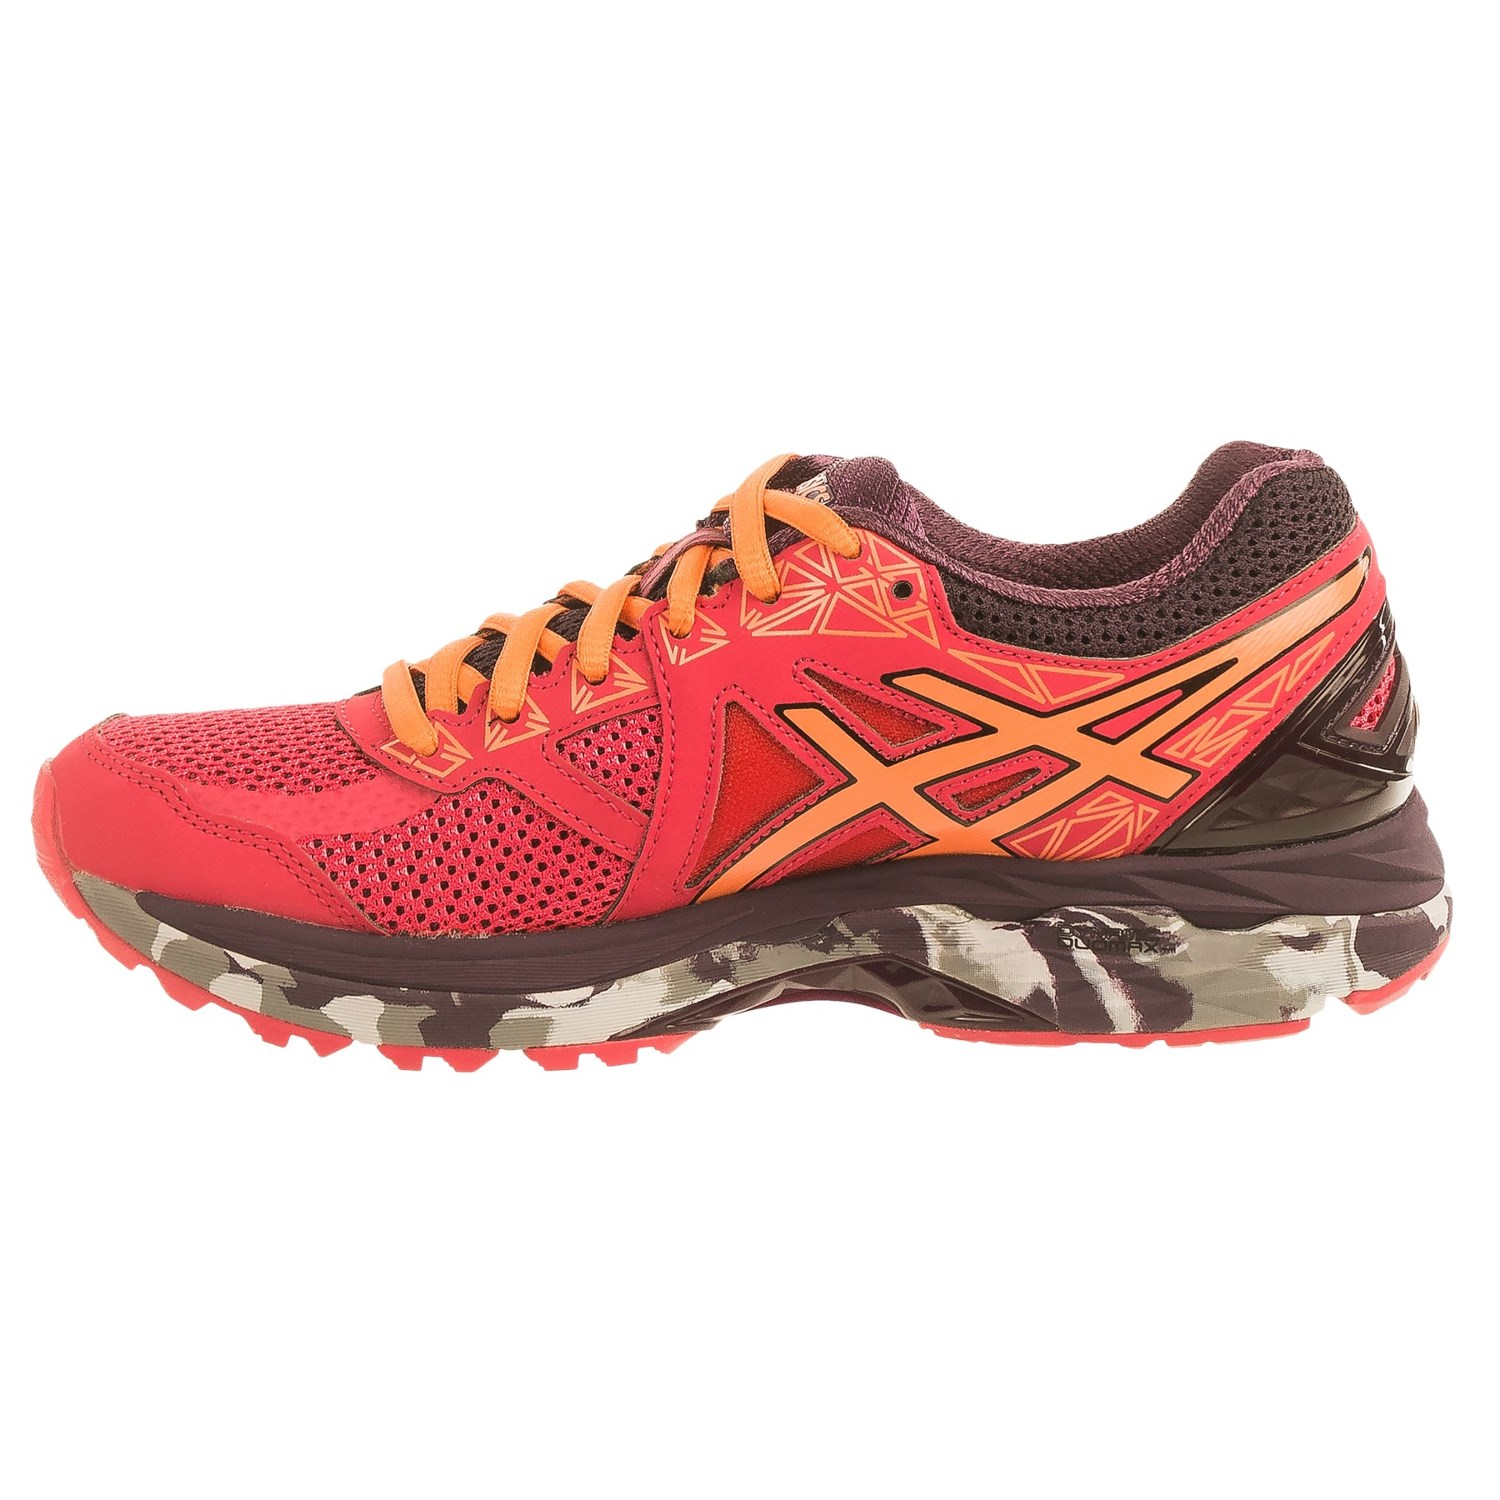 asics gt 2000 4 trail running shoes for women save 41. Black Bedroom Furniture Sets. Home Design Ideas